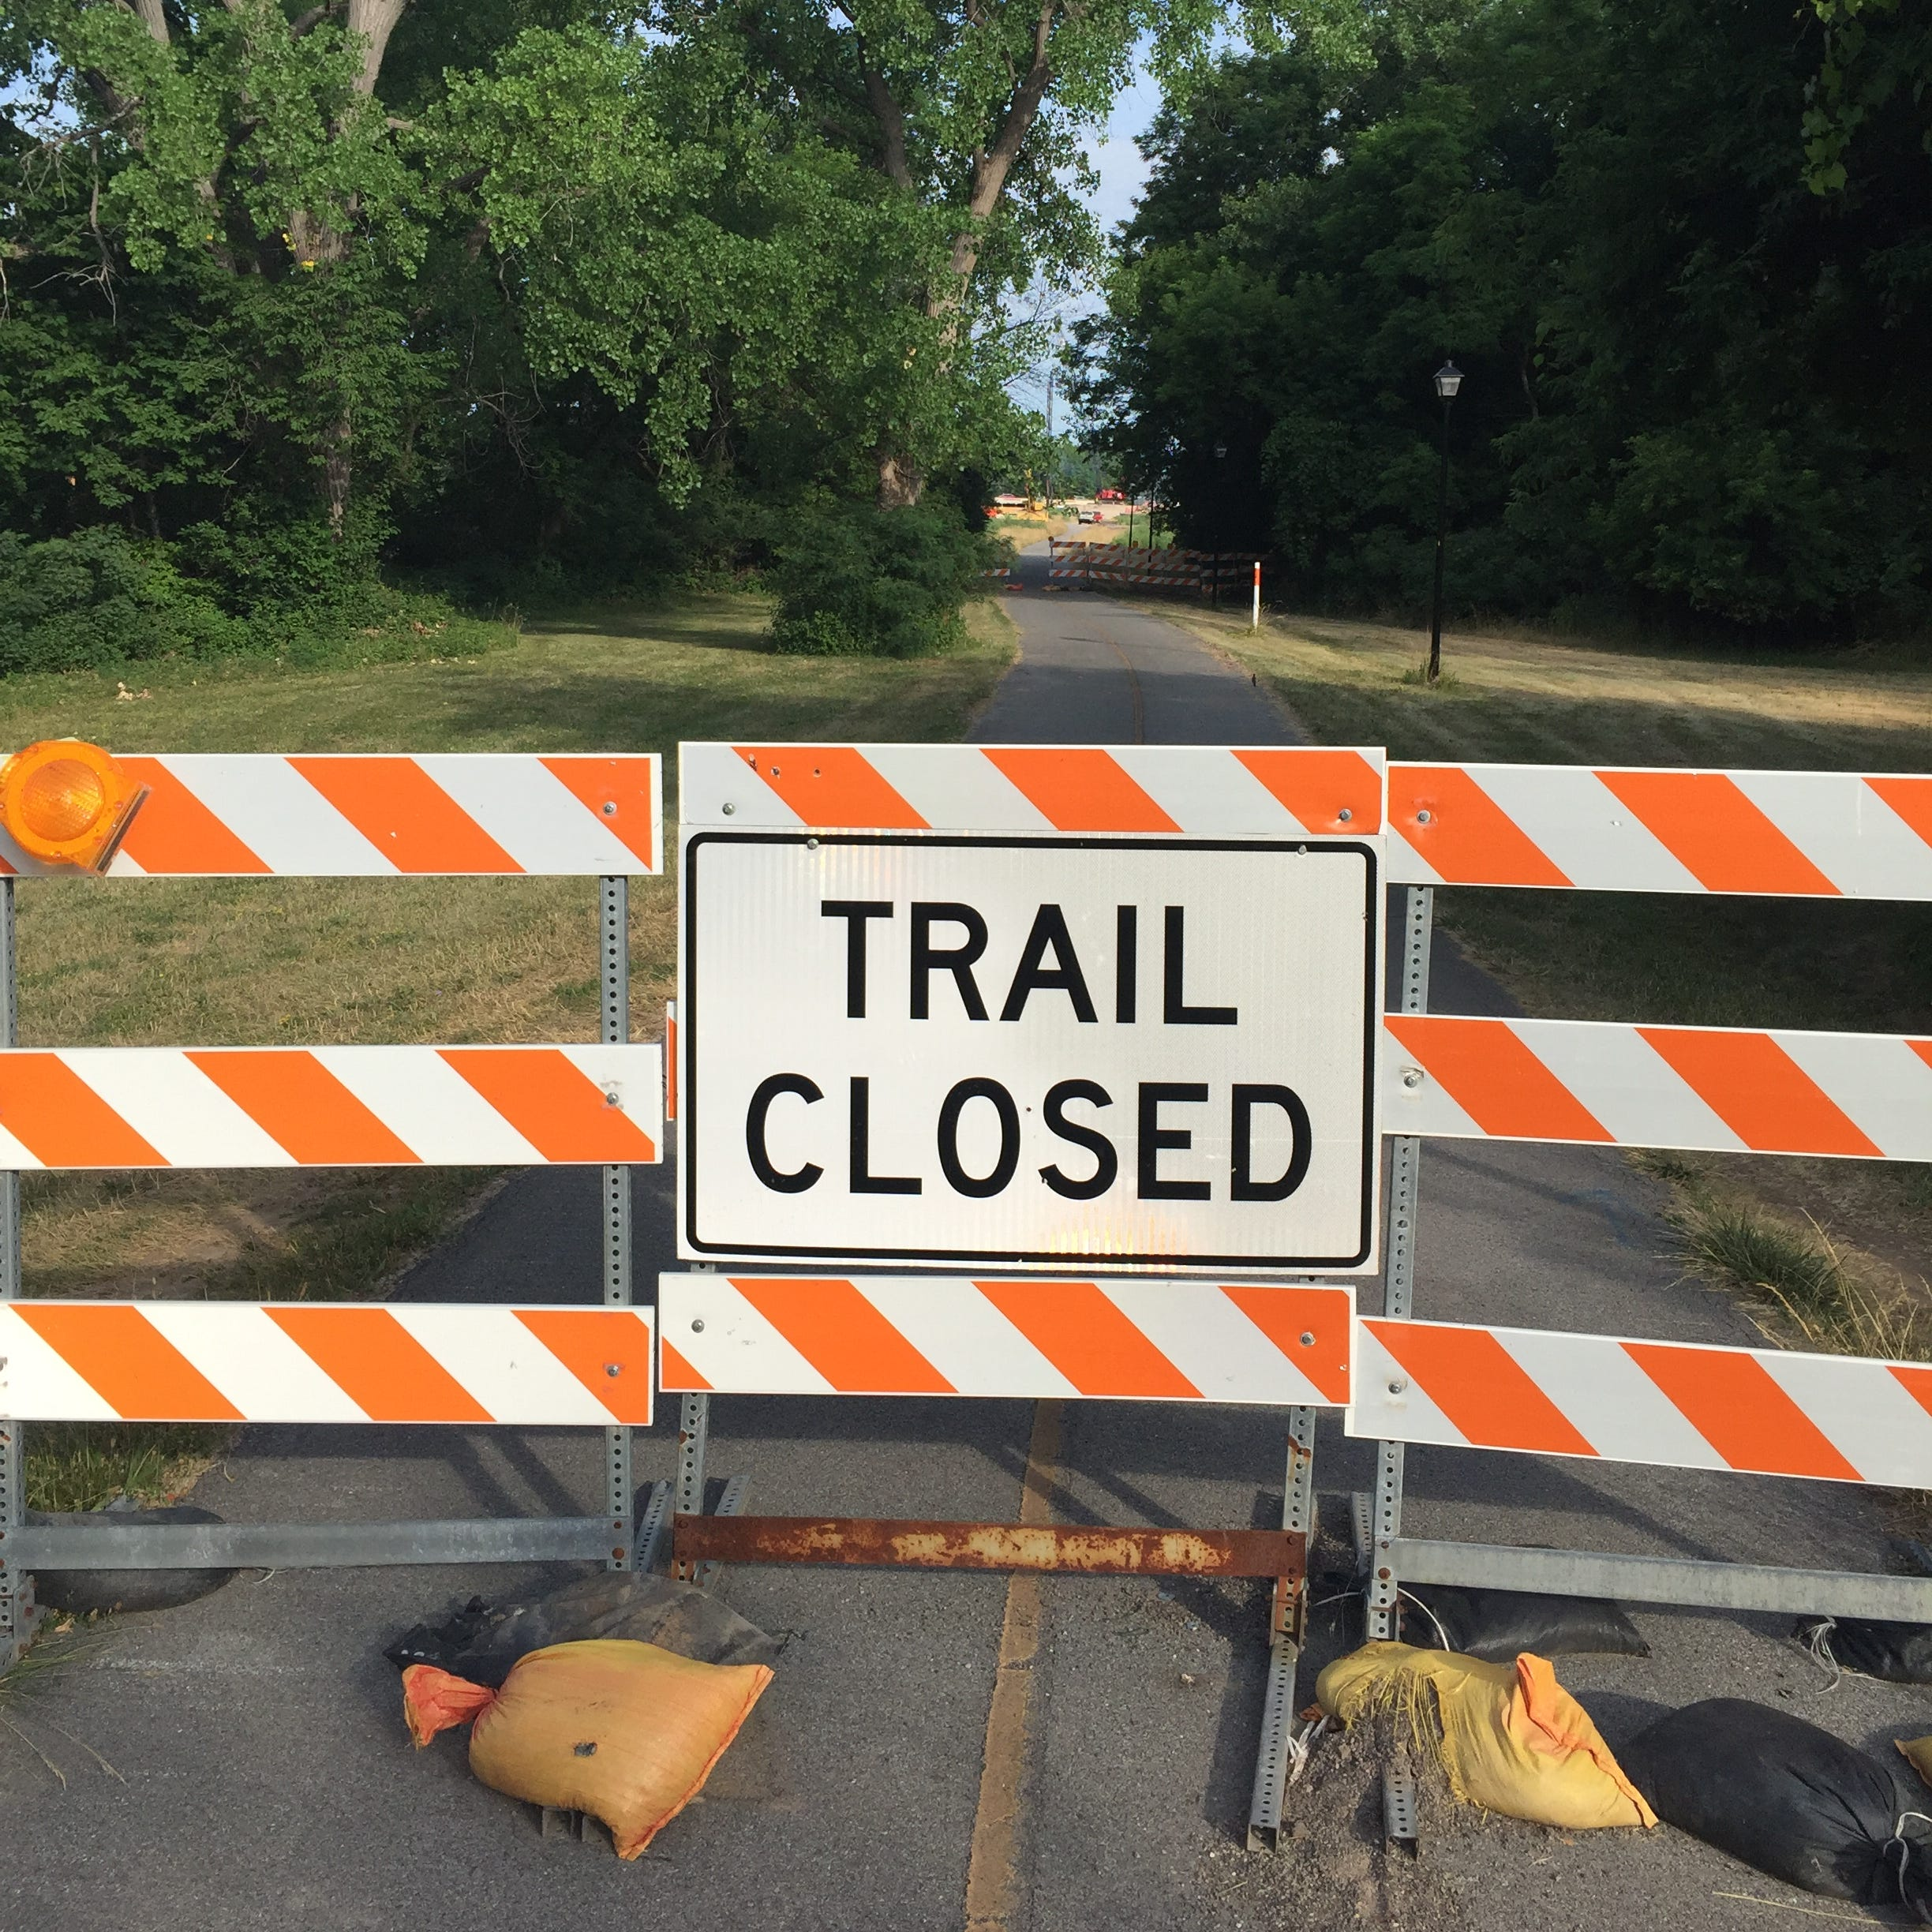 Canal trail near Route 390 in Gates closing for construction